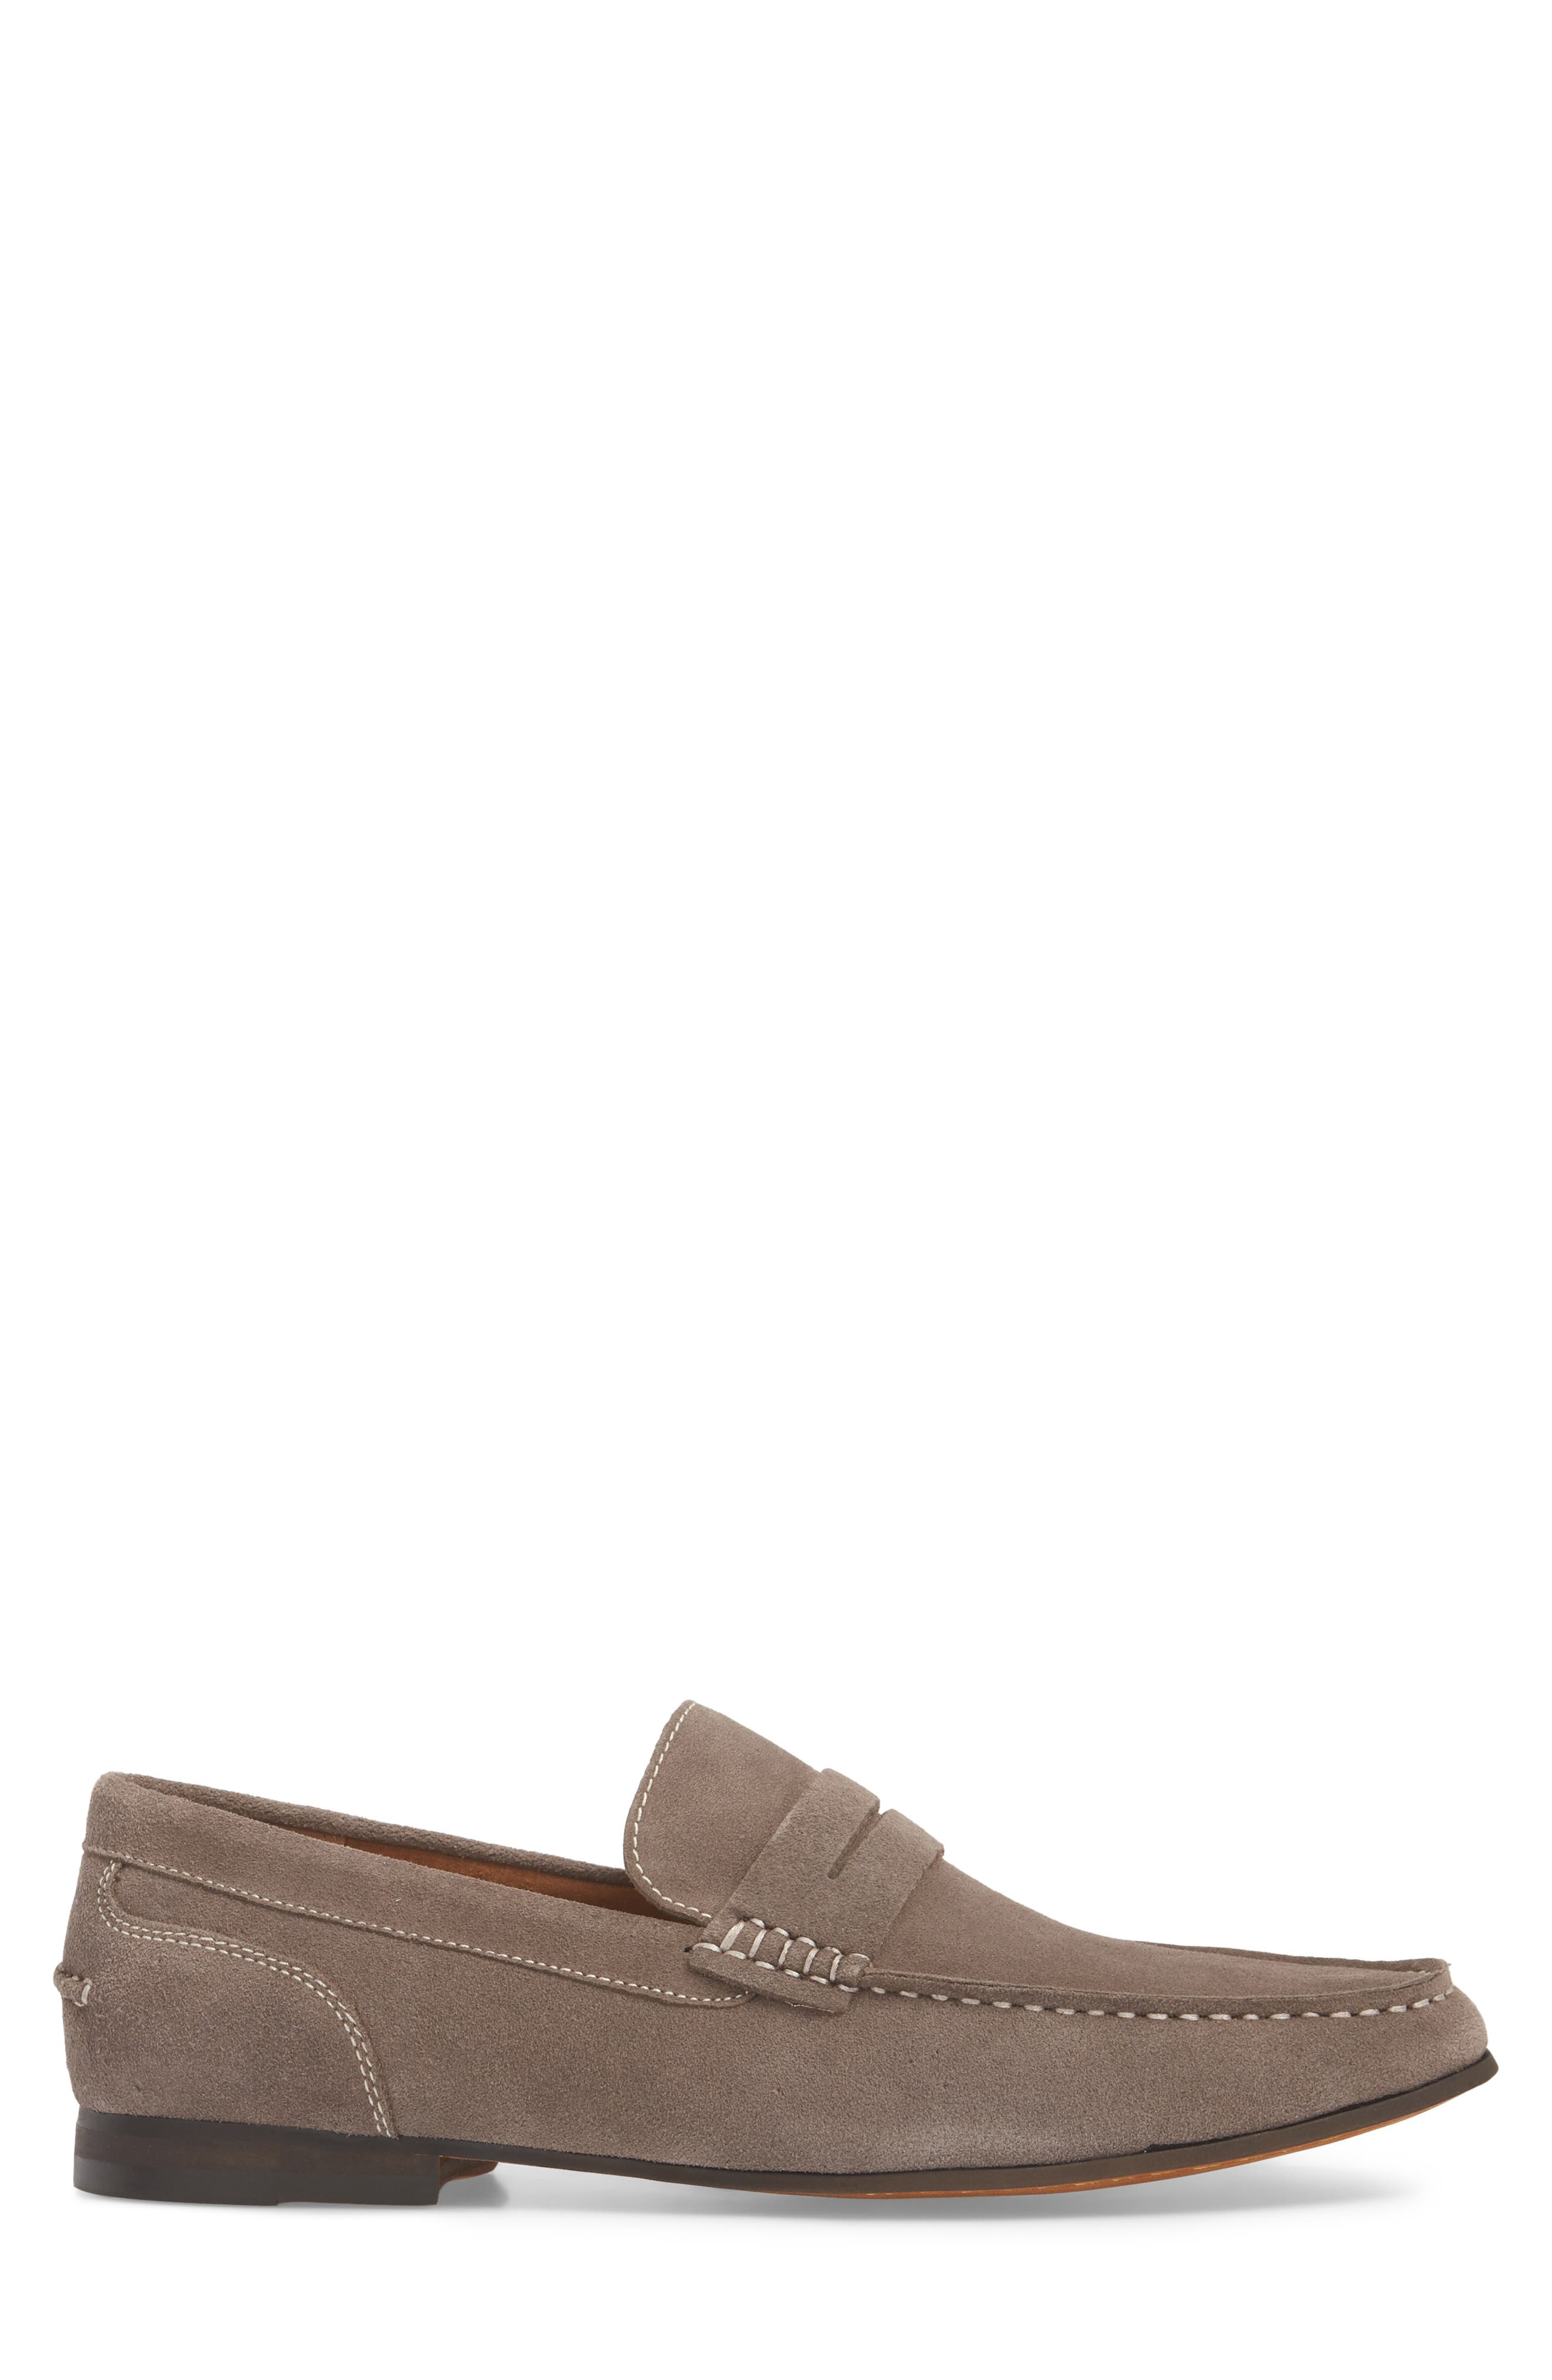 Crespo Penny Loafer,                             Alternate thumbnail 3, color,                             Grey